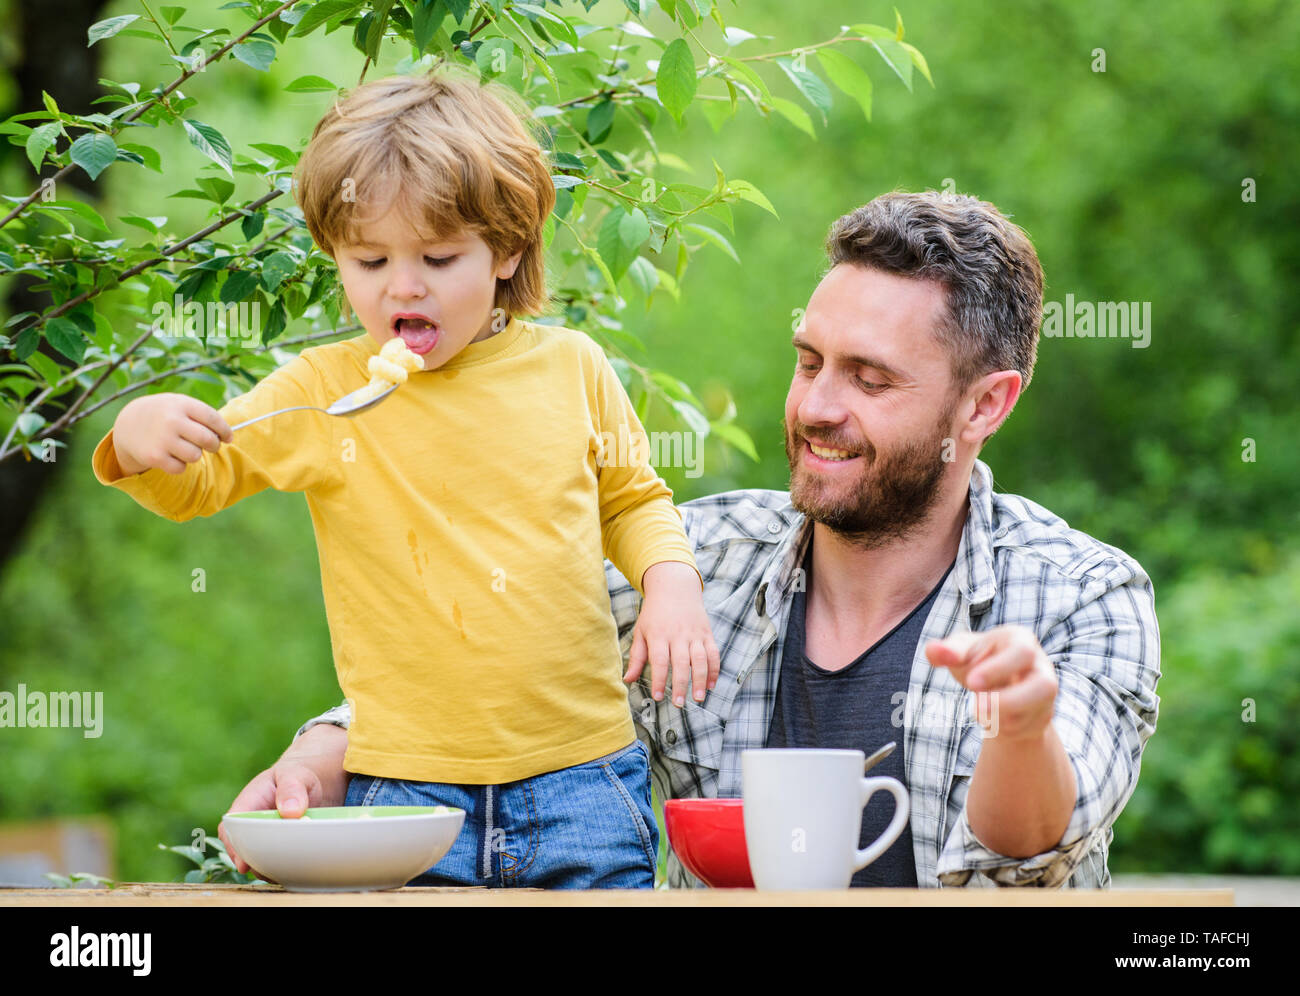 Father son eat food and have fun. Food habits. Little boy with dad eating food nature background. Summer breakfast. Healthy food concept. Feeding baby. Menu for children. Family enjoy homemade meal. - Stock Image